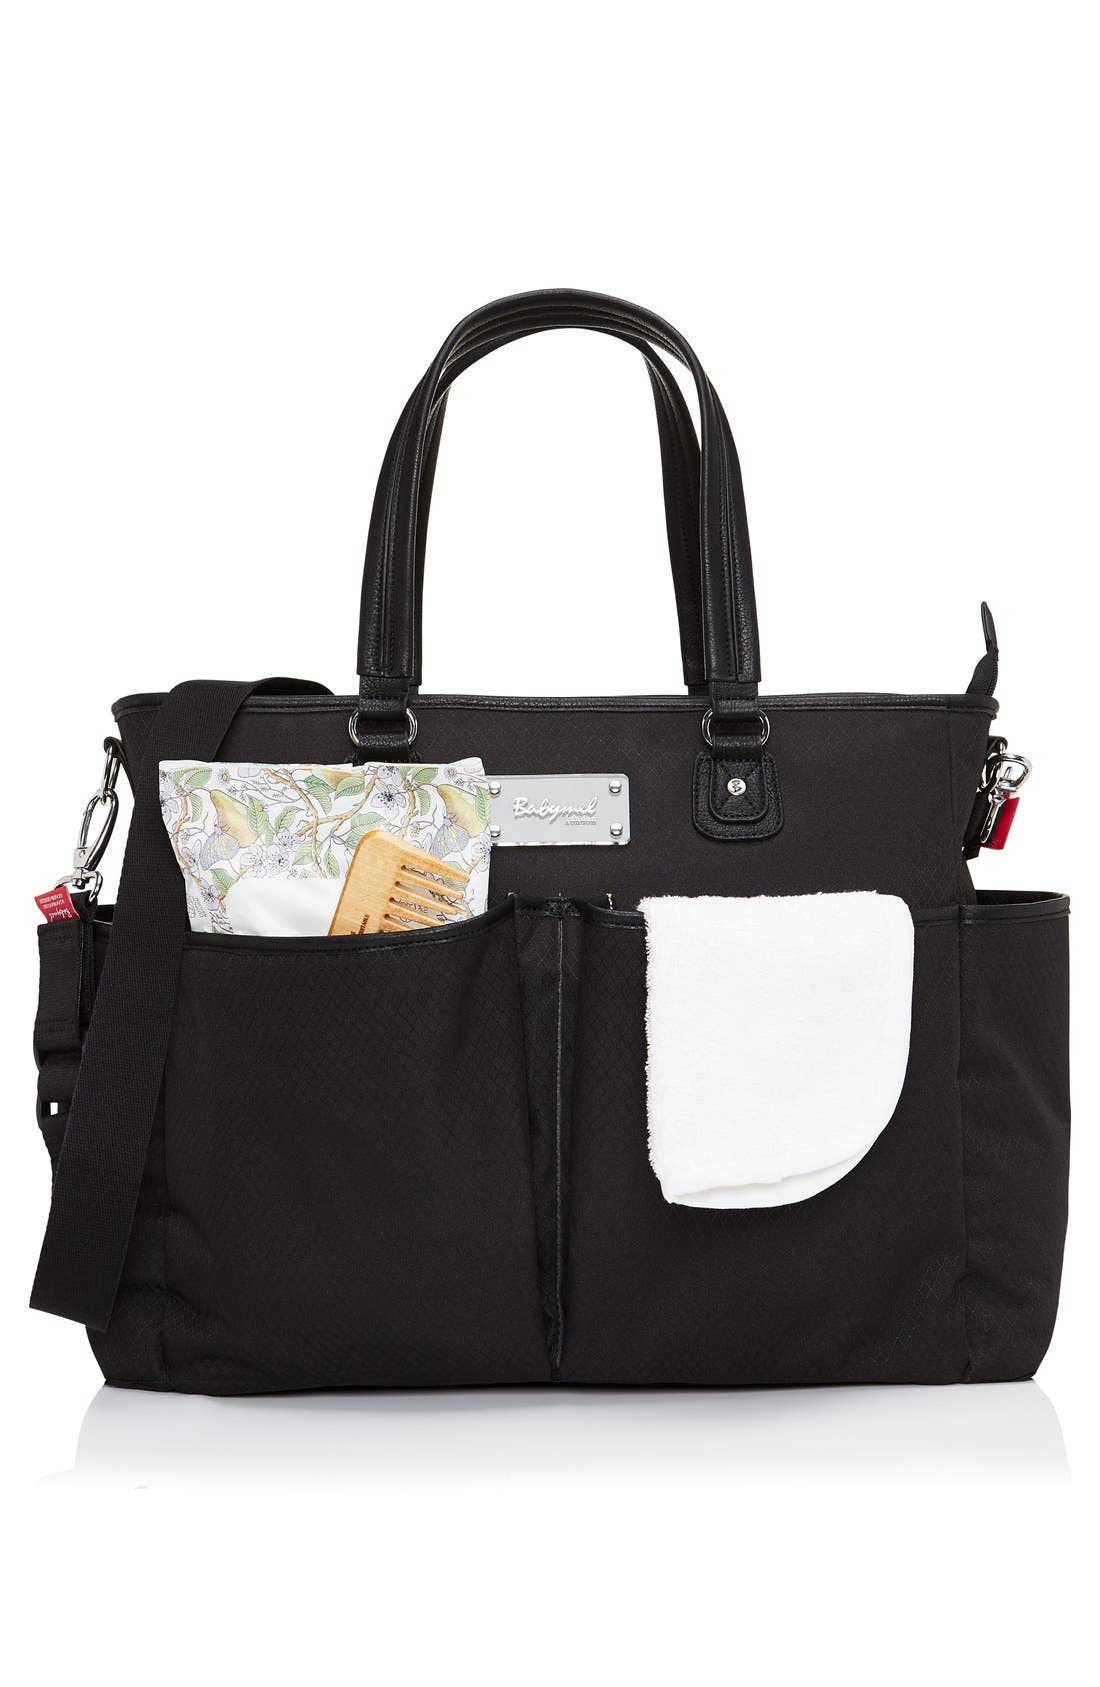 Bella Diaper Bag,                             Alternate thumbnail 11, color,                             003